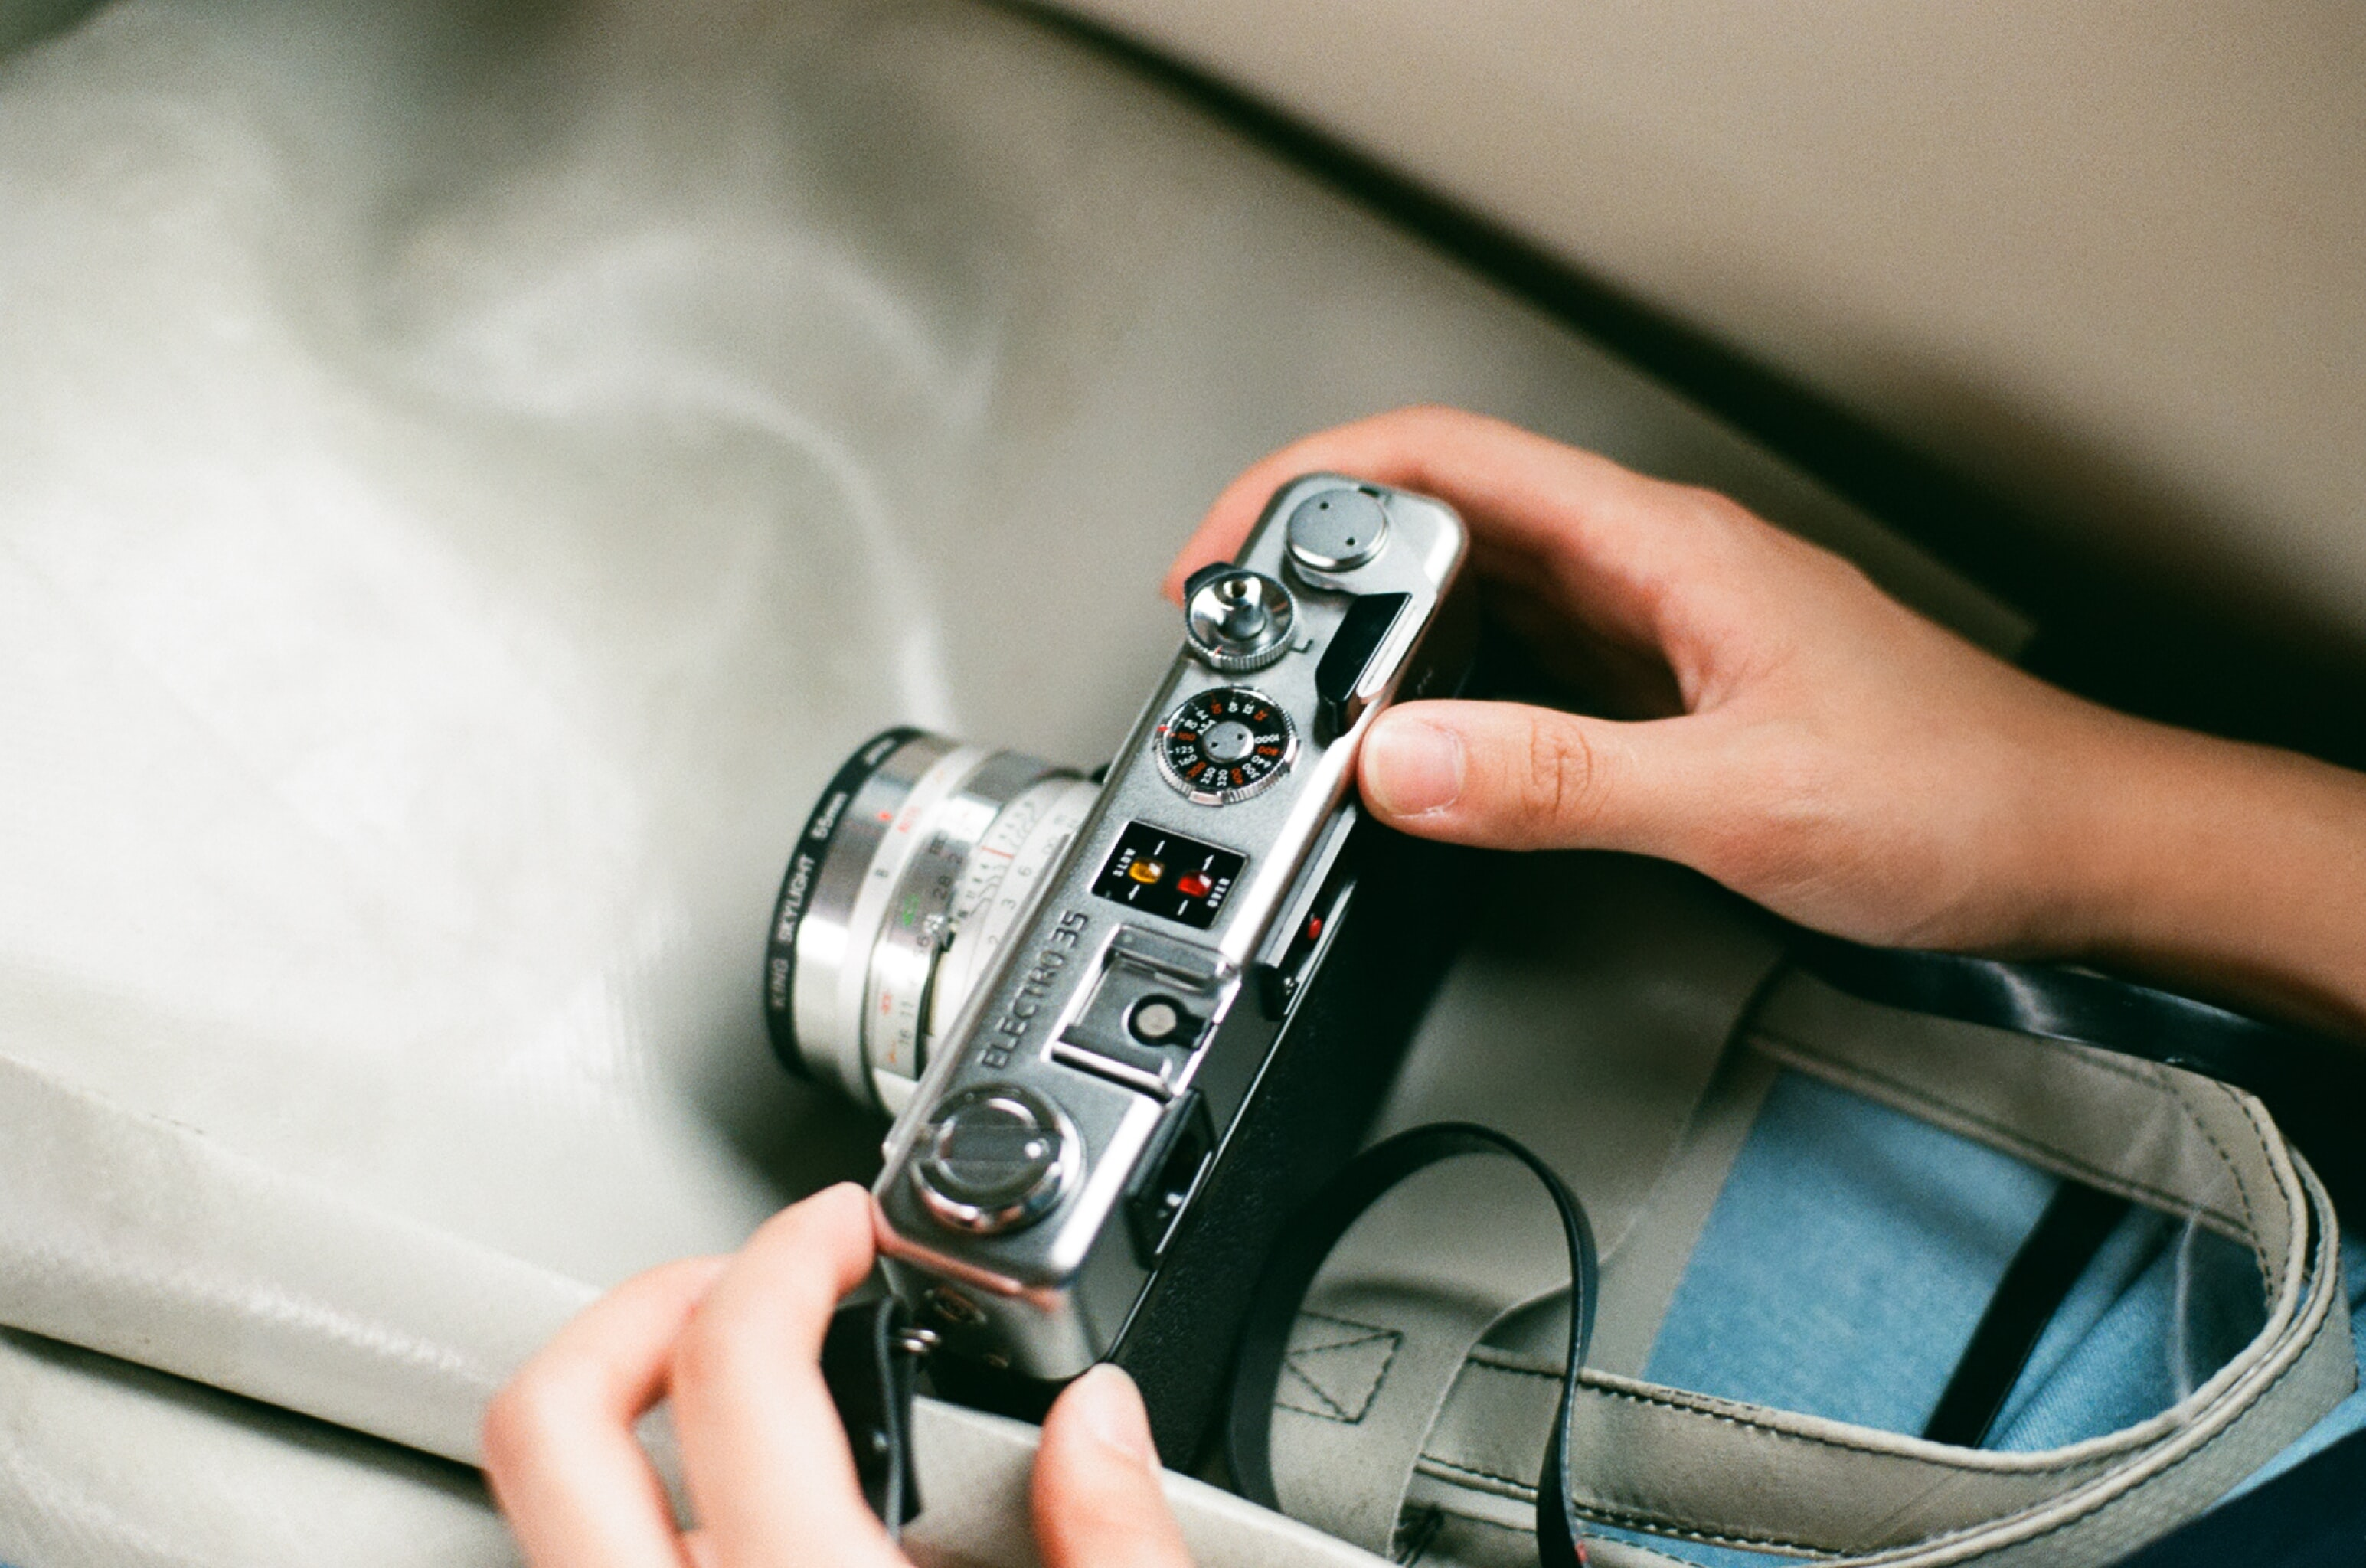 person holding gray and black DSLR camera